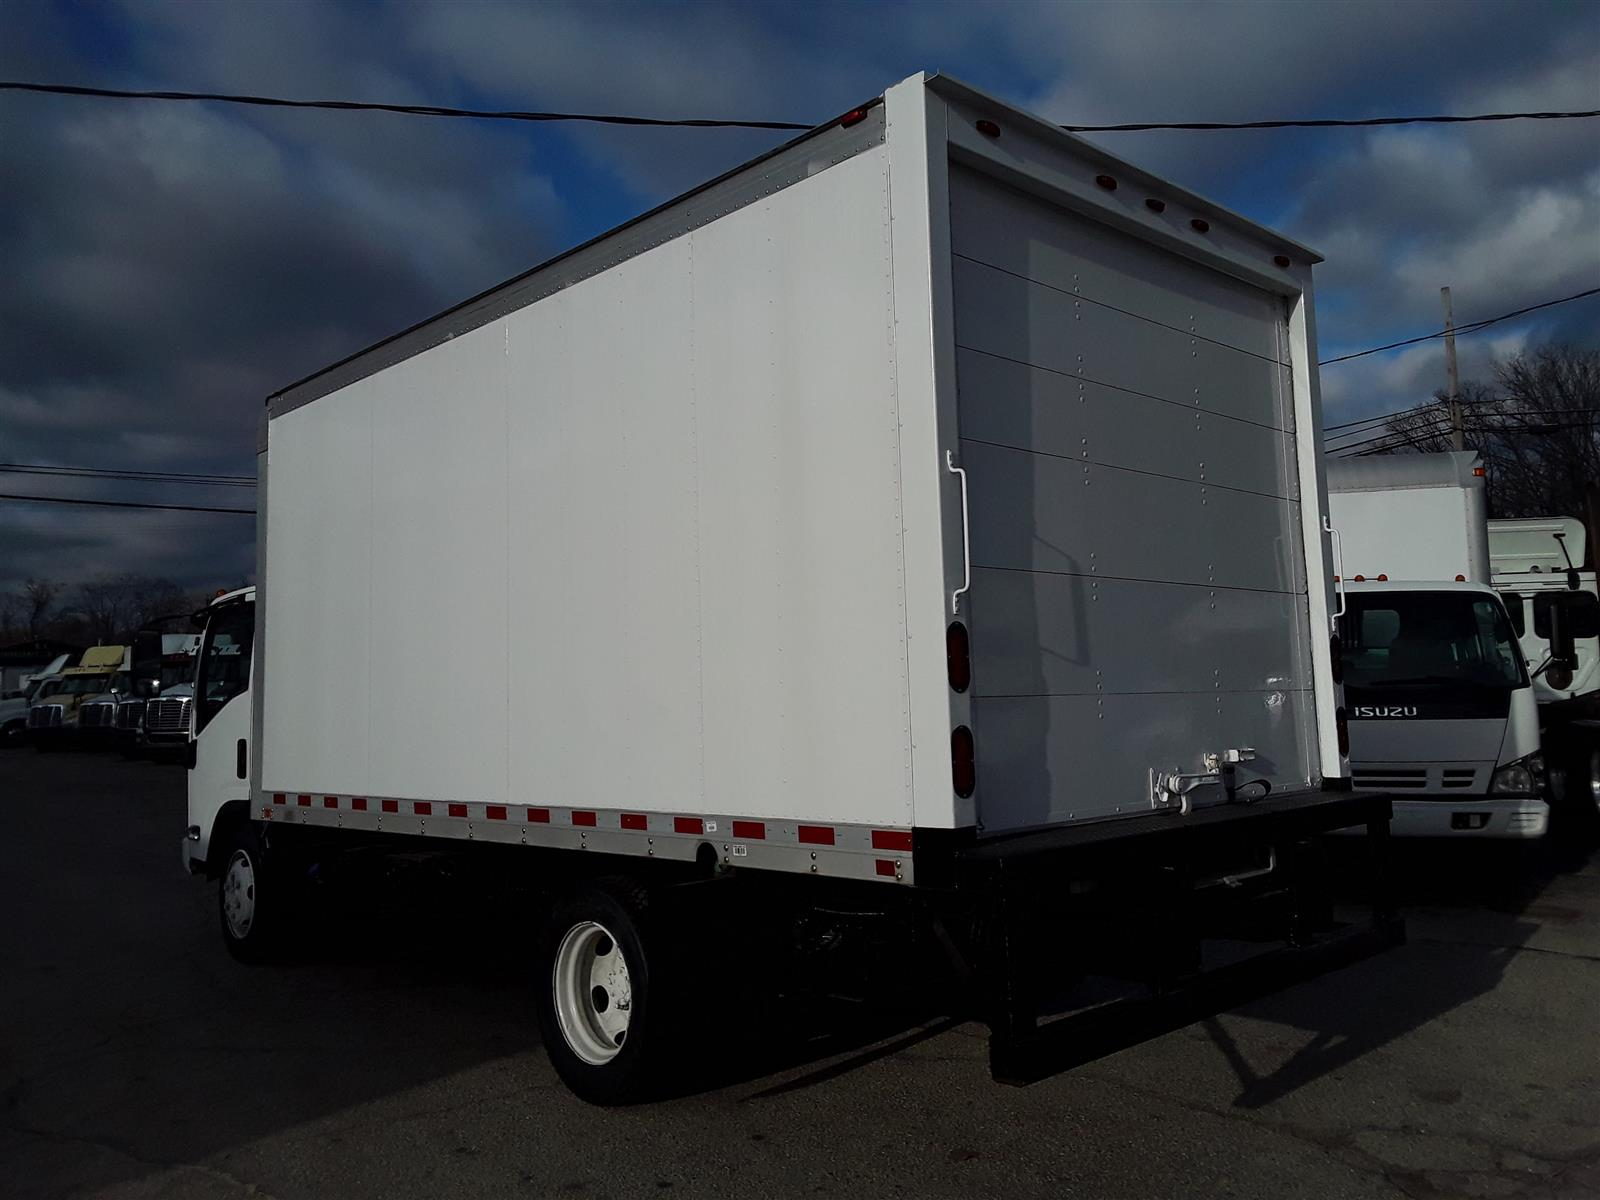 2015 Isuzu NQR Regular Cab 4x2, Dry Freight #648940 - photo 1